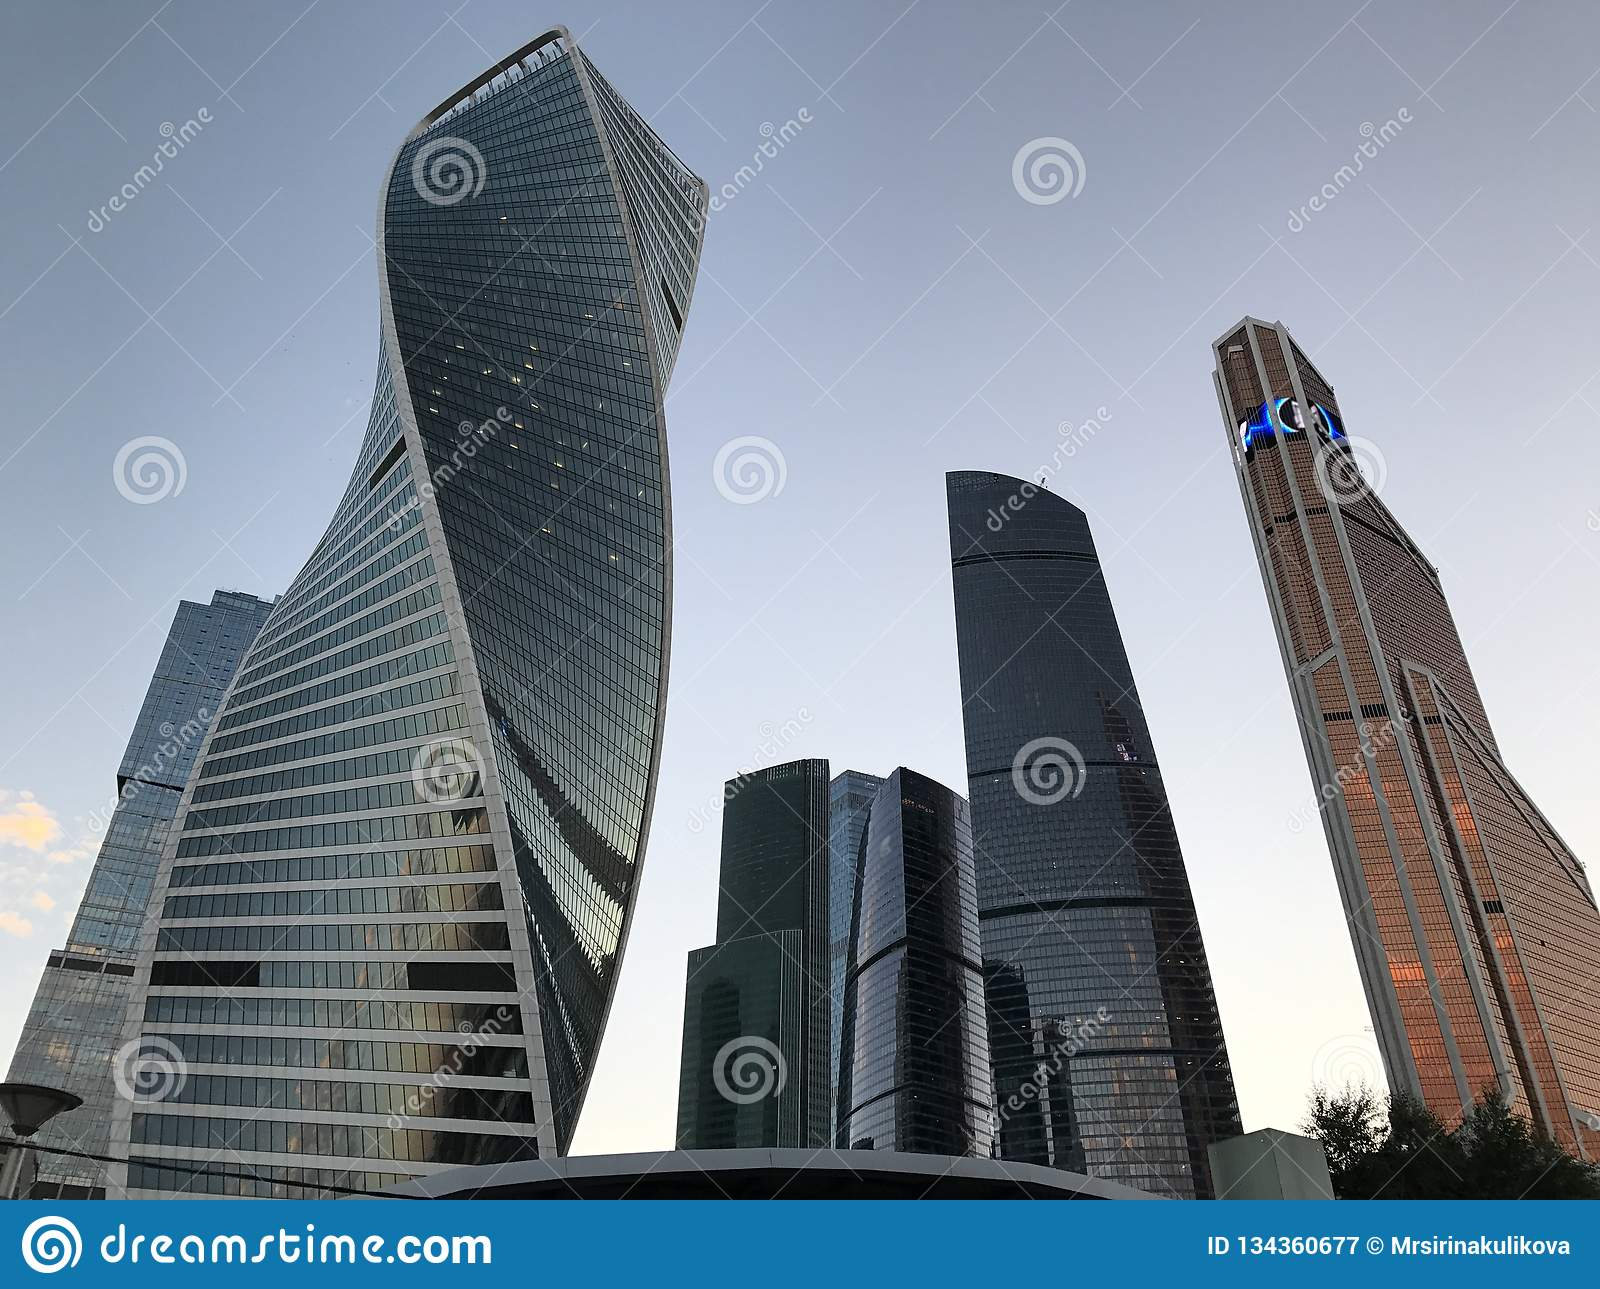 Moscow City - view of skyscrapers Moscow International Business Center. Bottom view